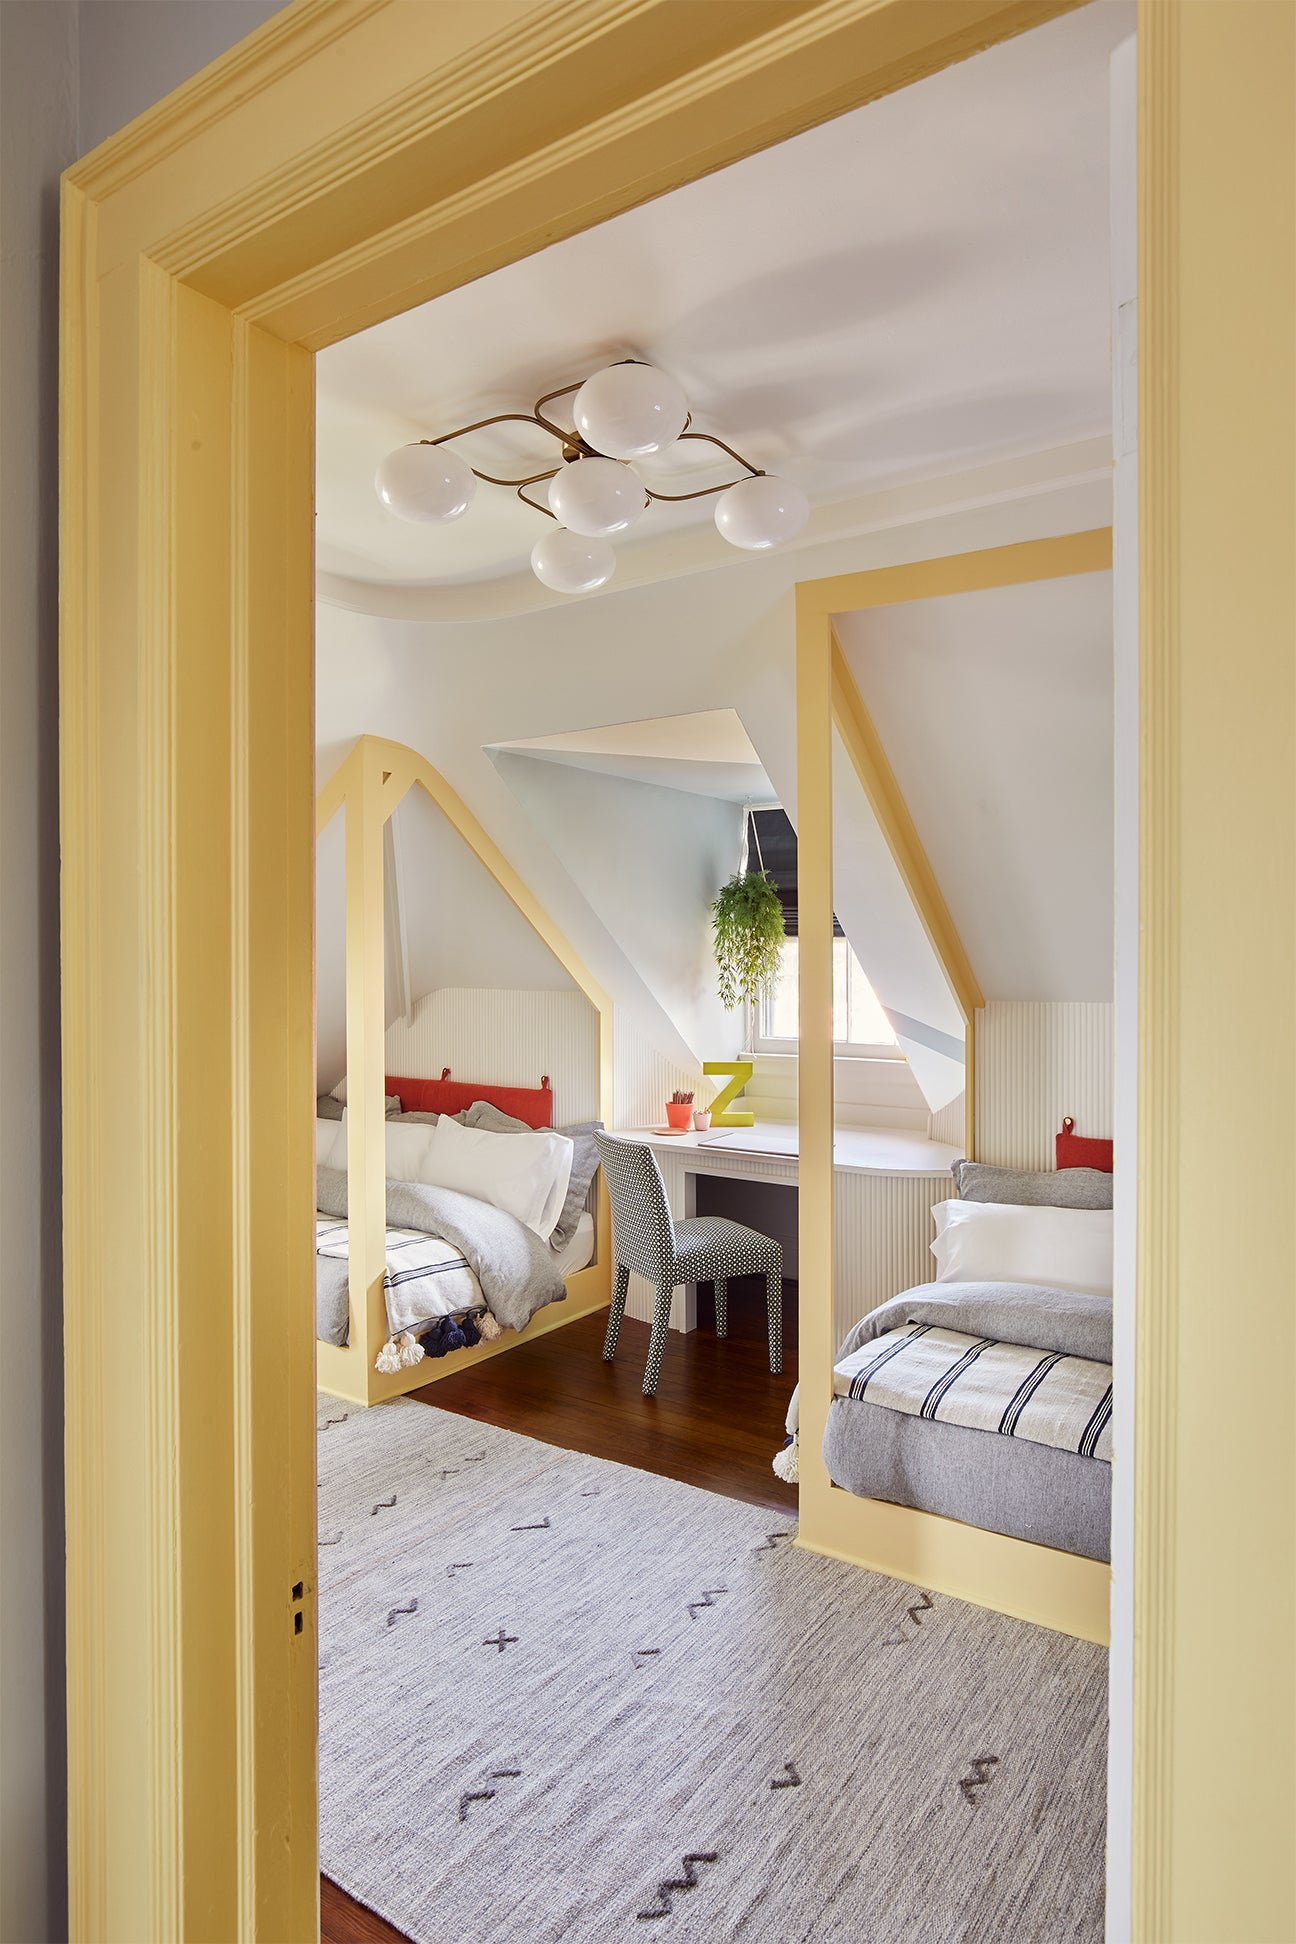 Attic Kids Room With Yellow Canopy Beds